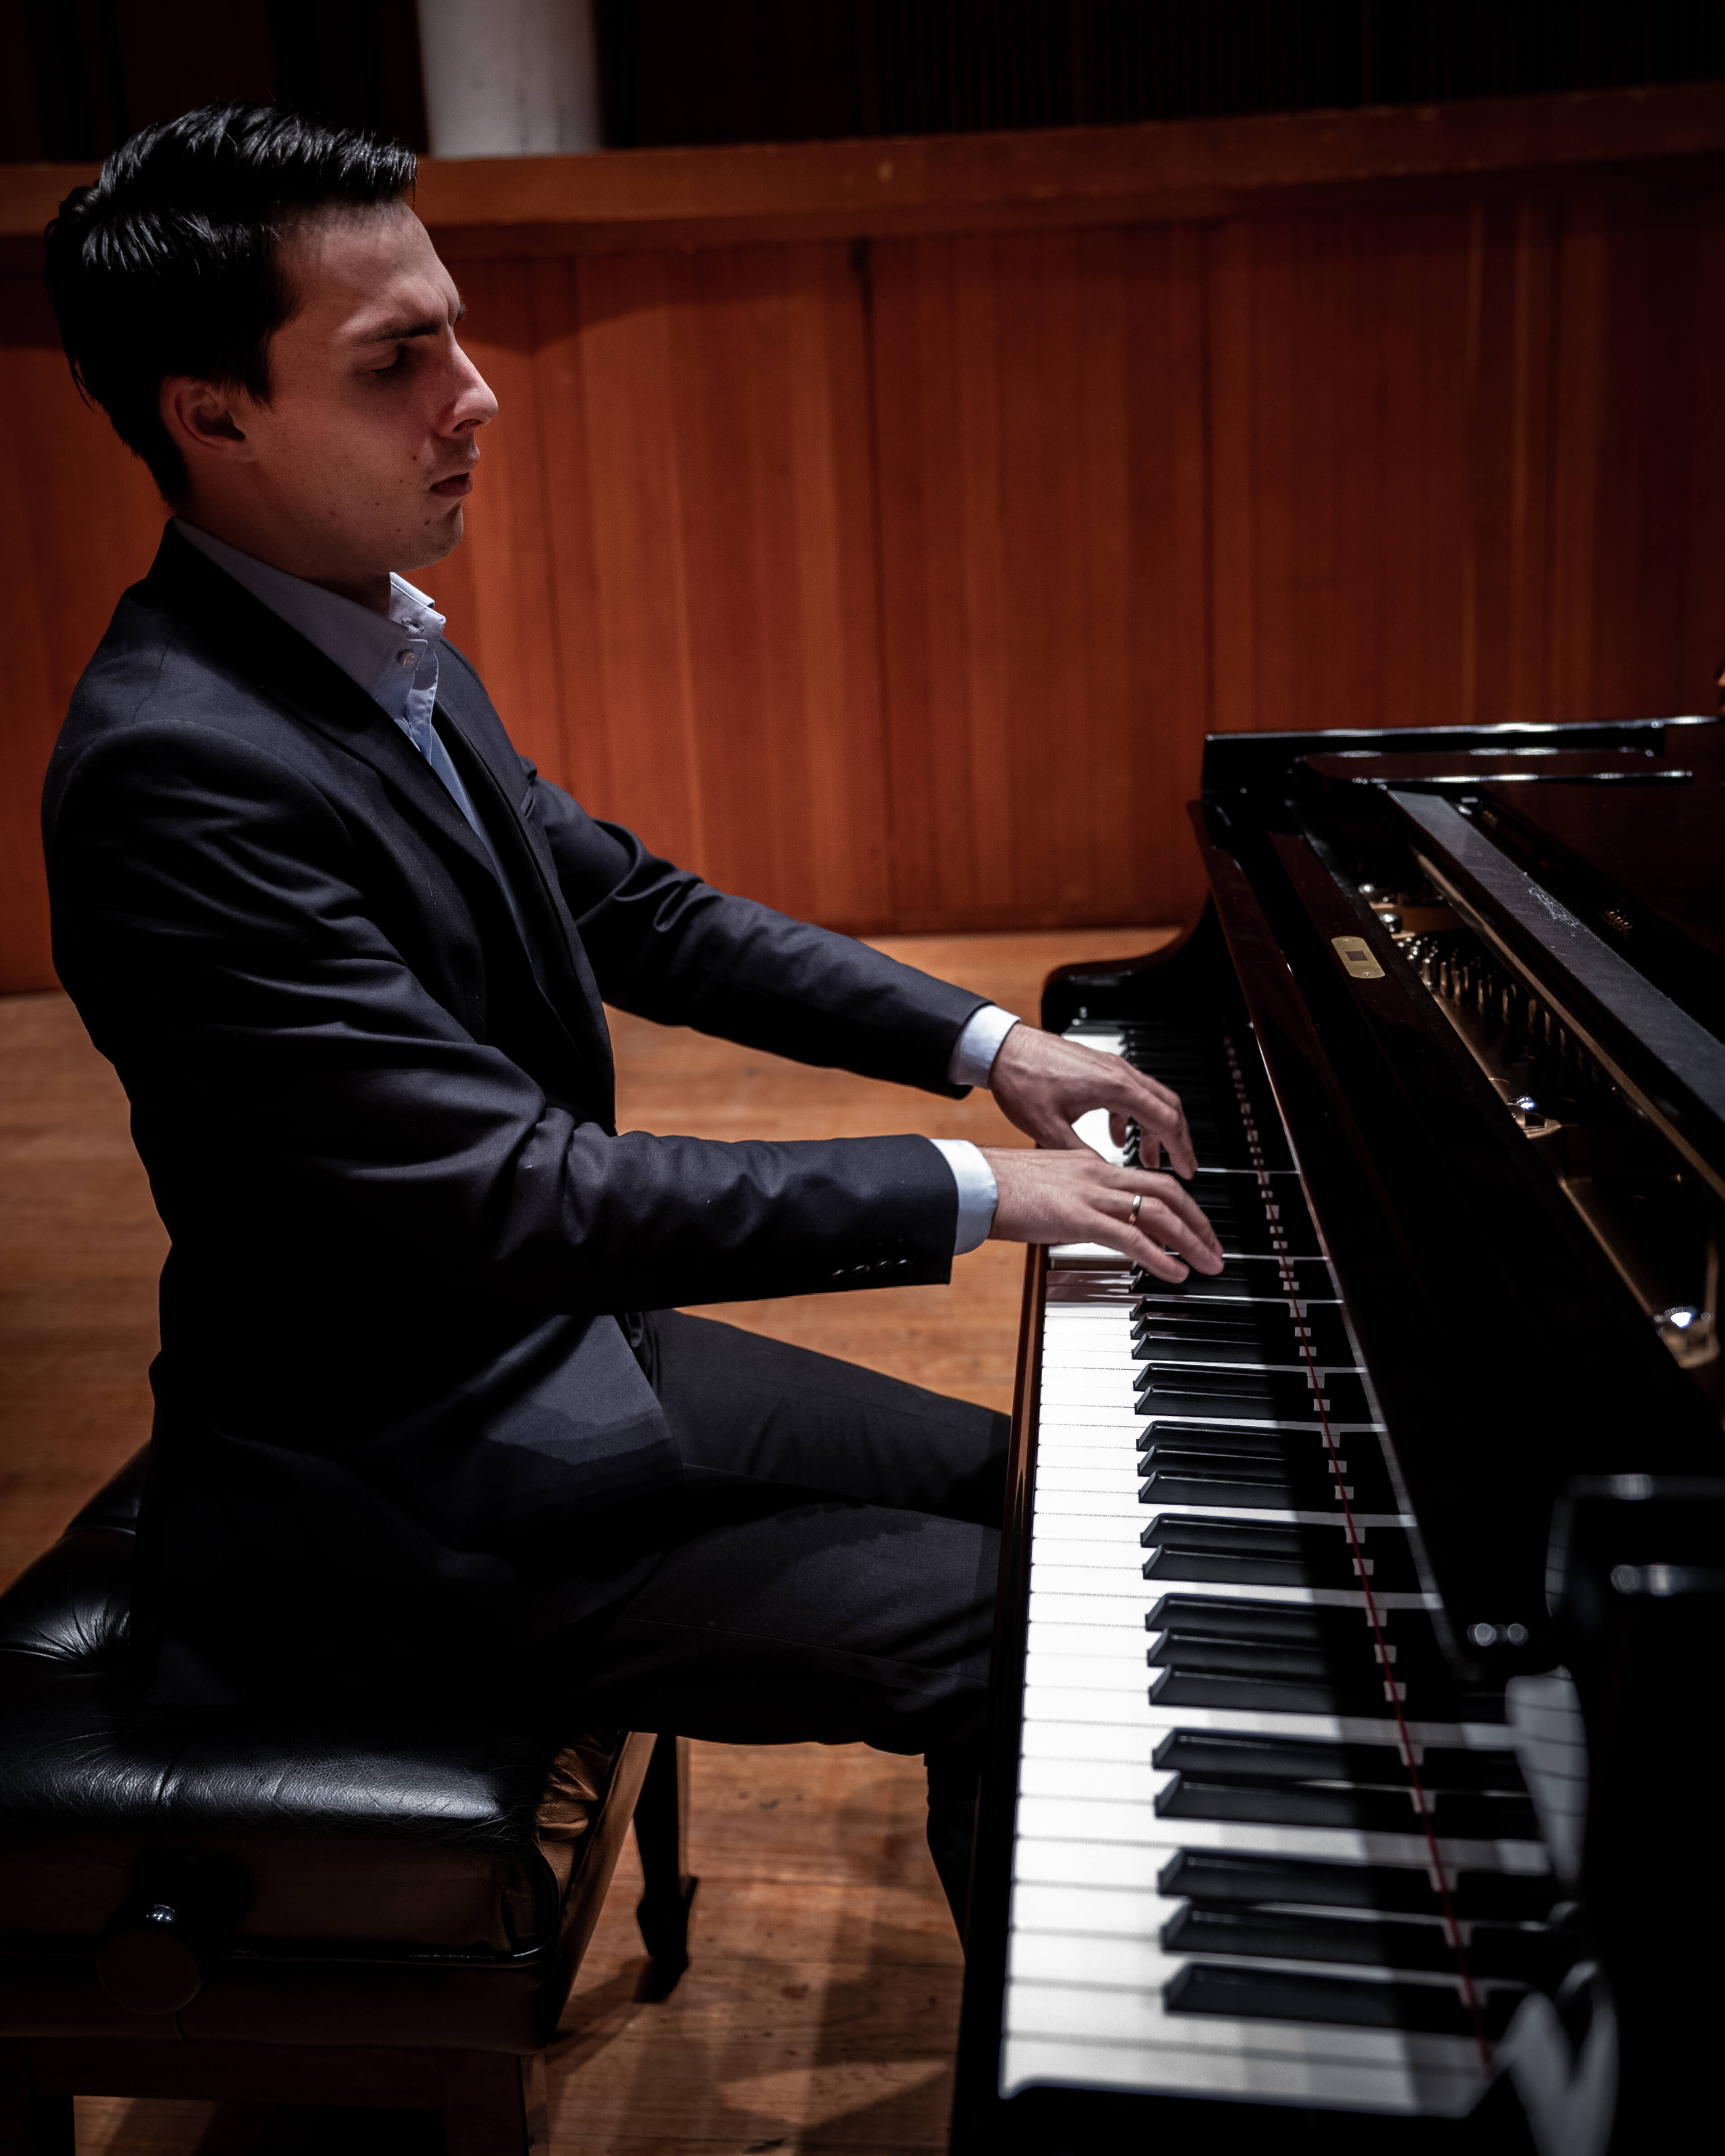 Pianist in a suit playing piano.